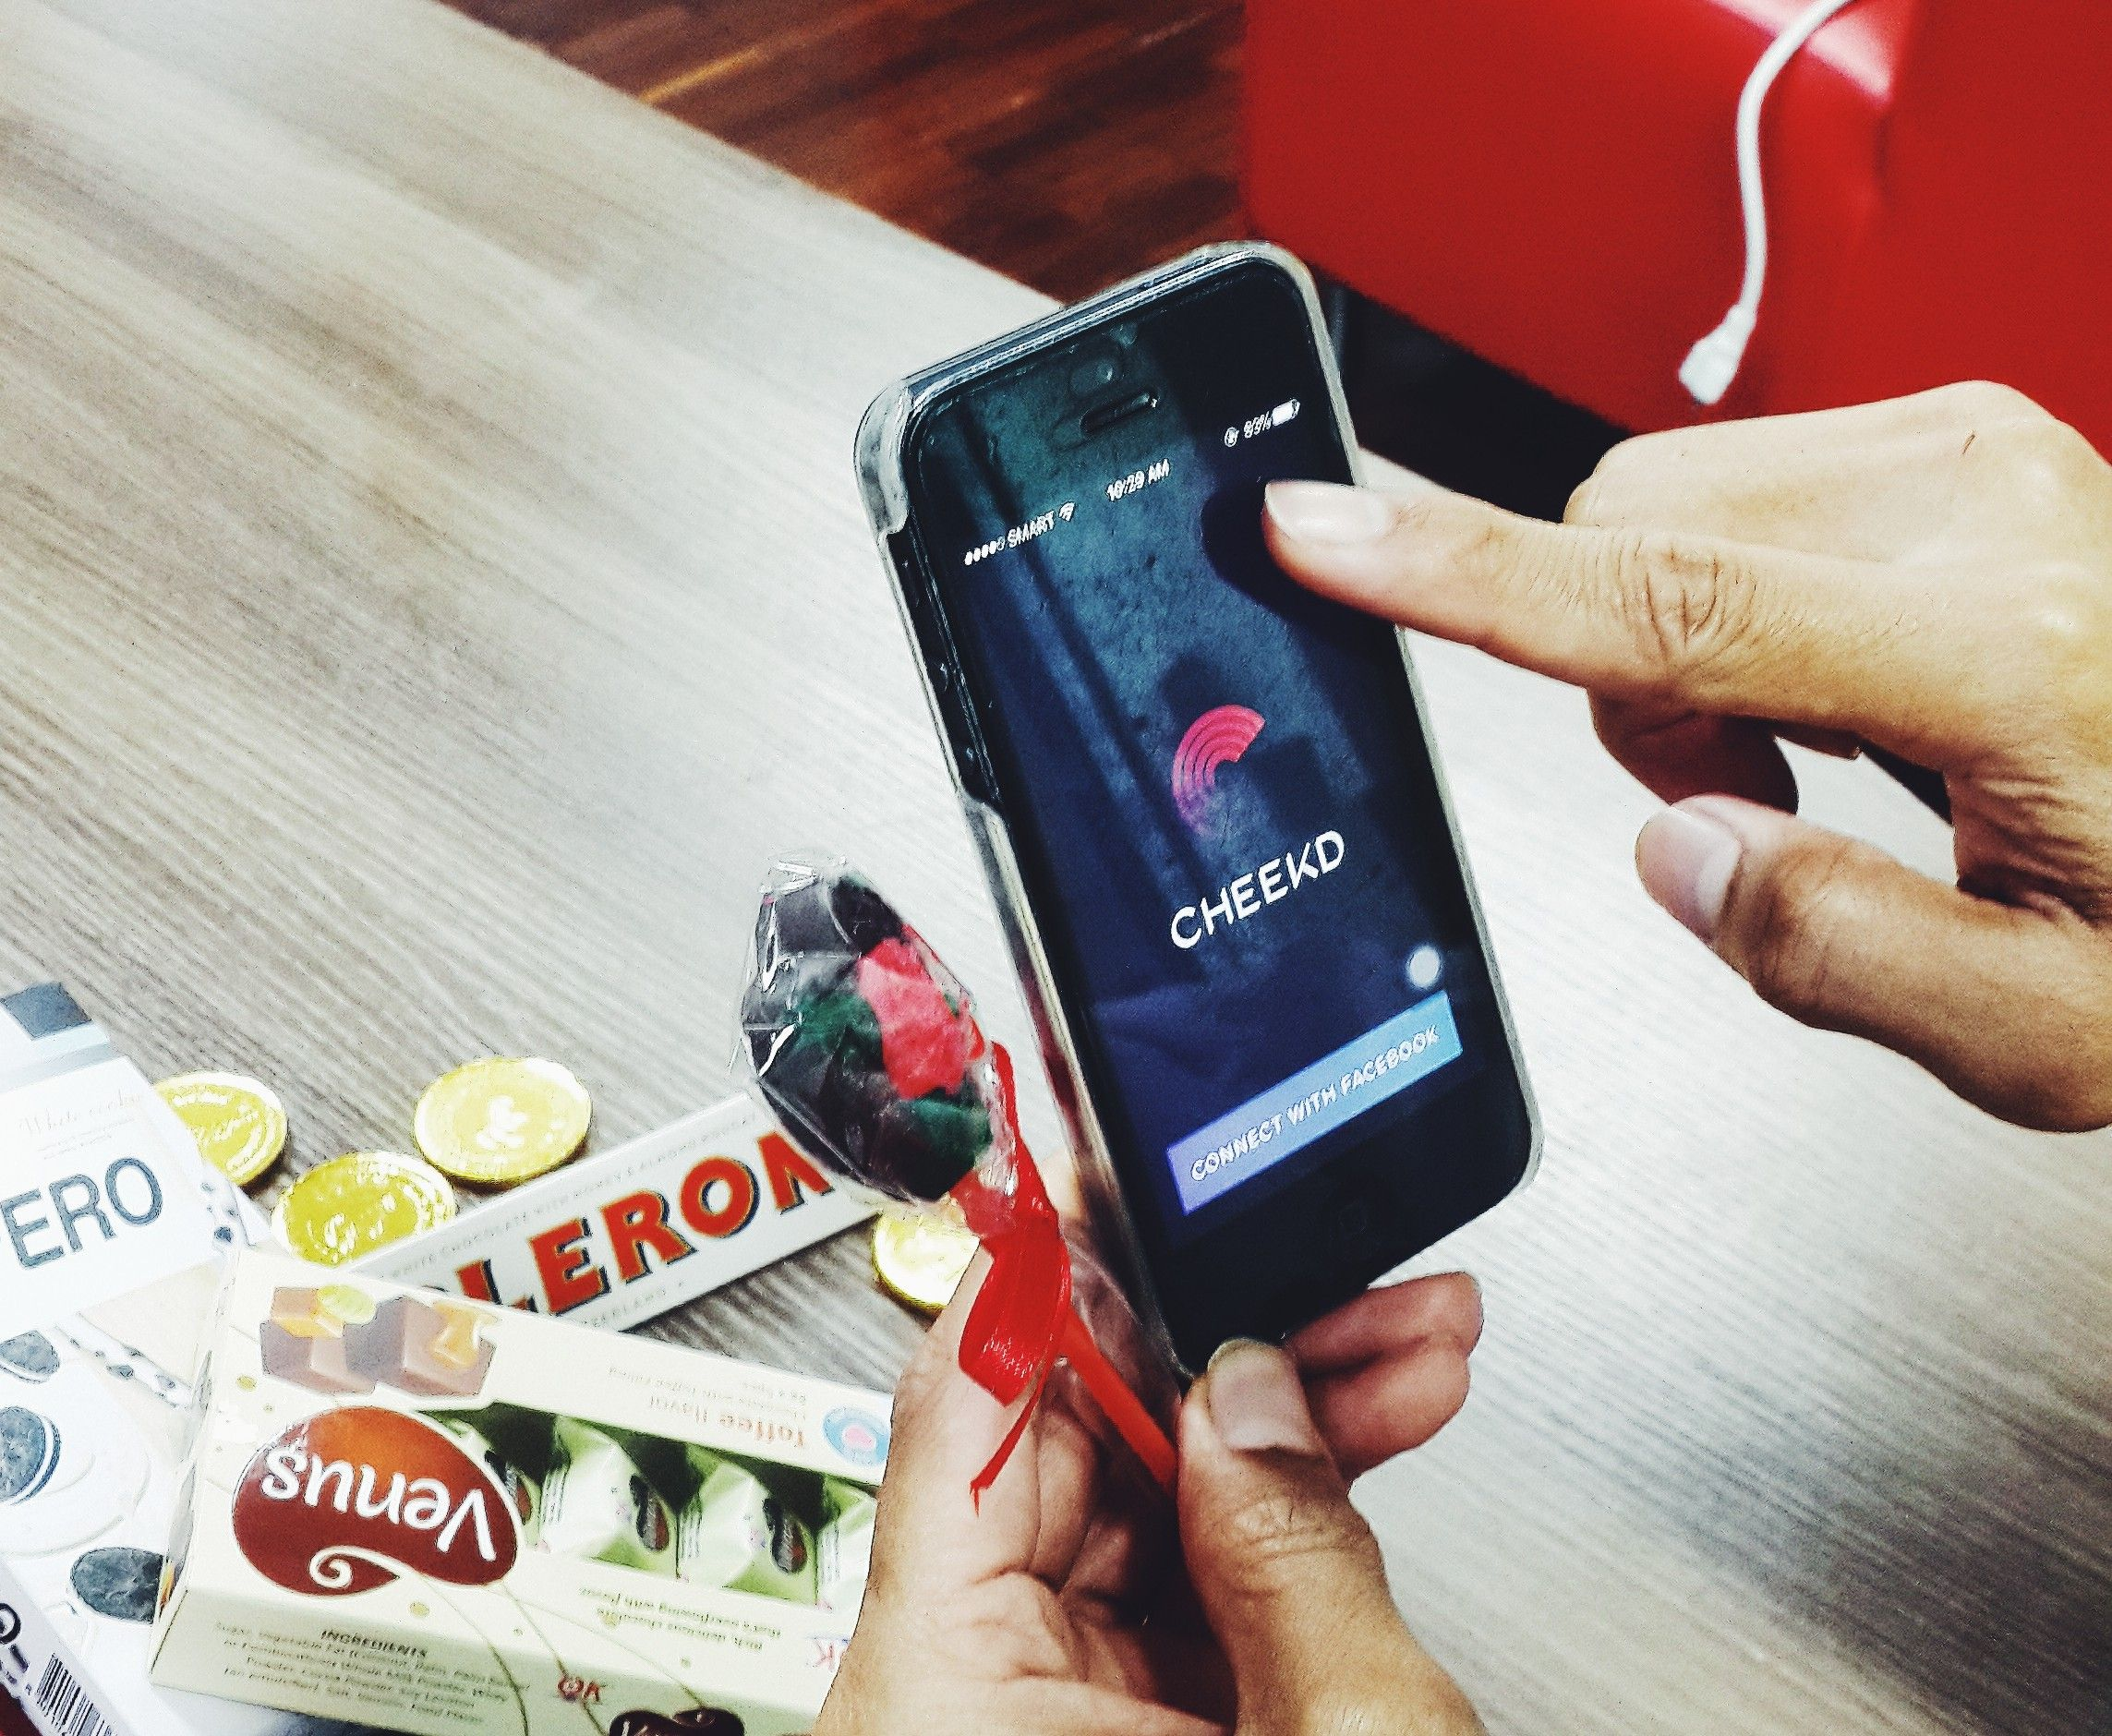 Happn is a fast-growing European mobile dating startup, launching in its second U.S. market today.